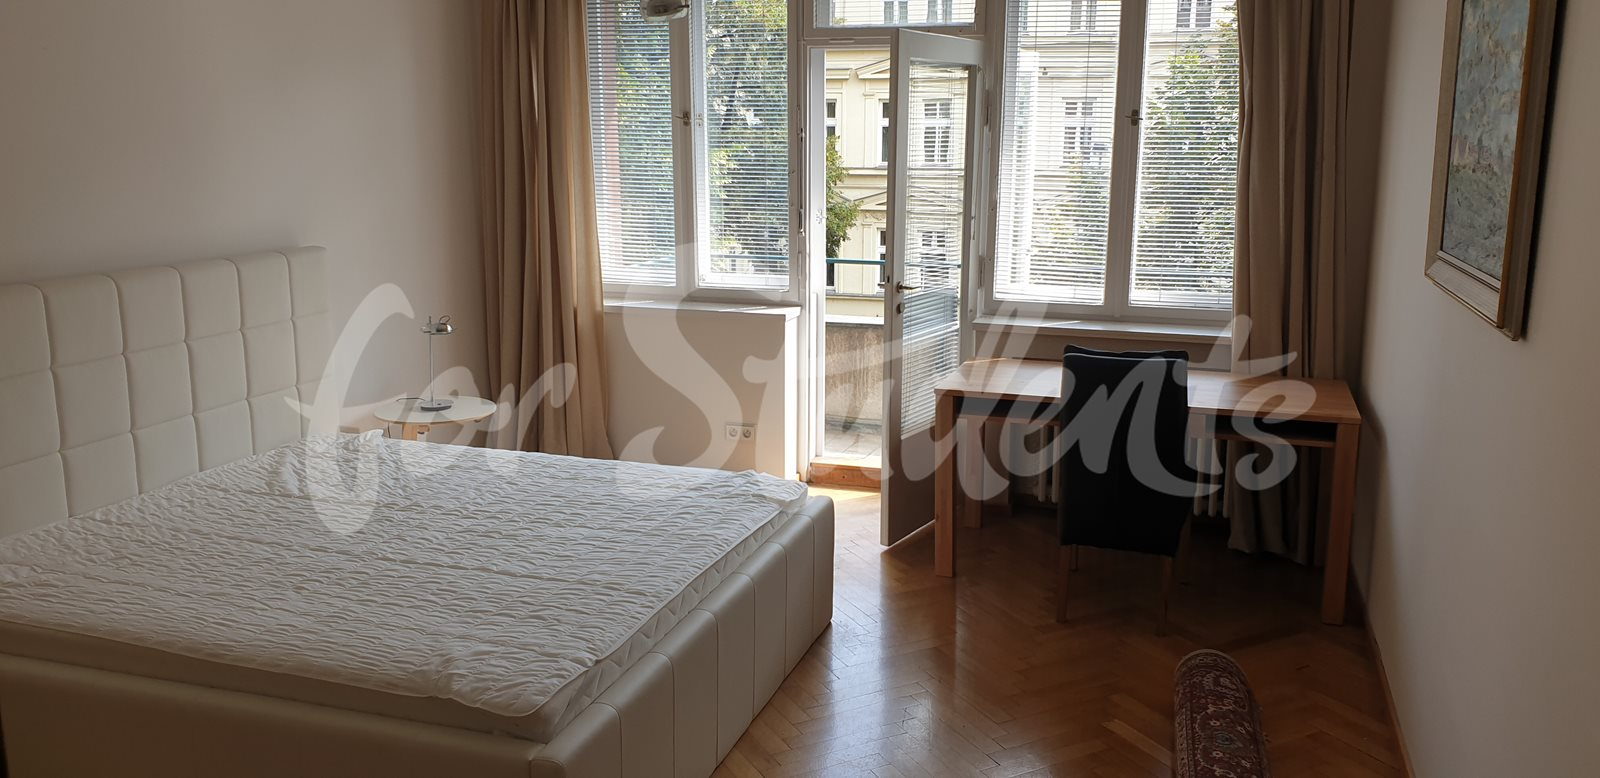 Two bedroom apartment in Prague 2, Vinohrady